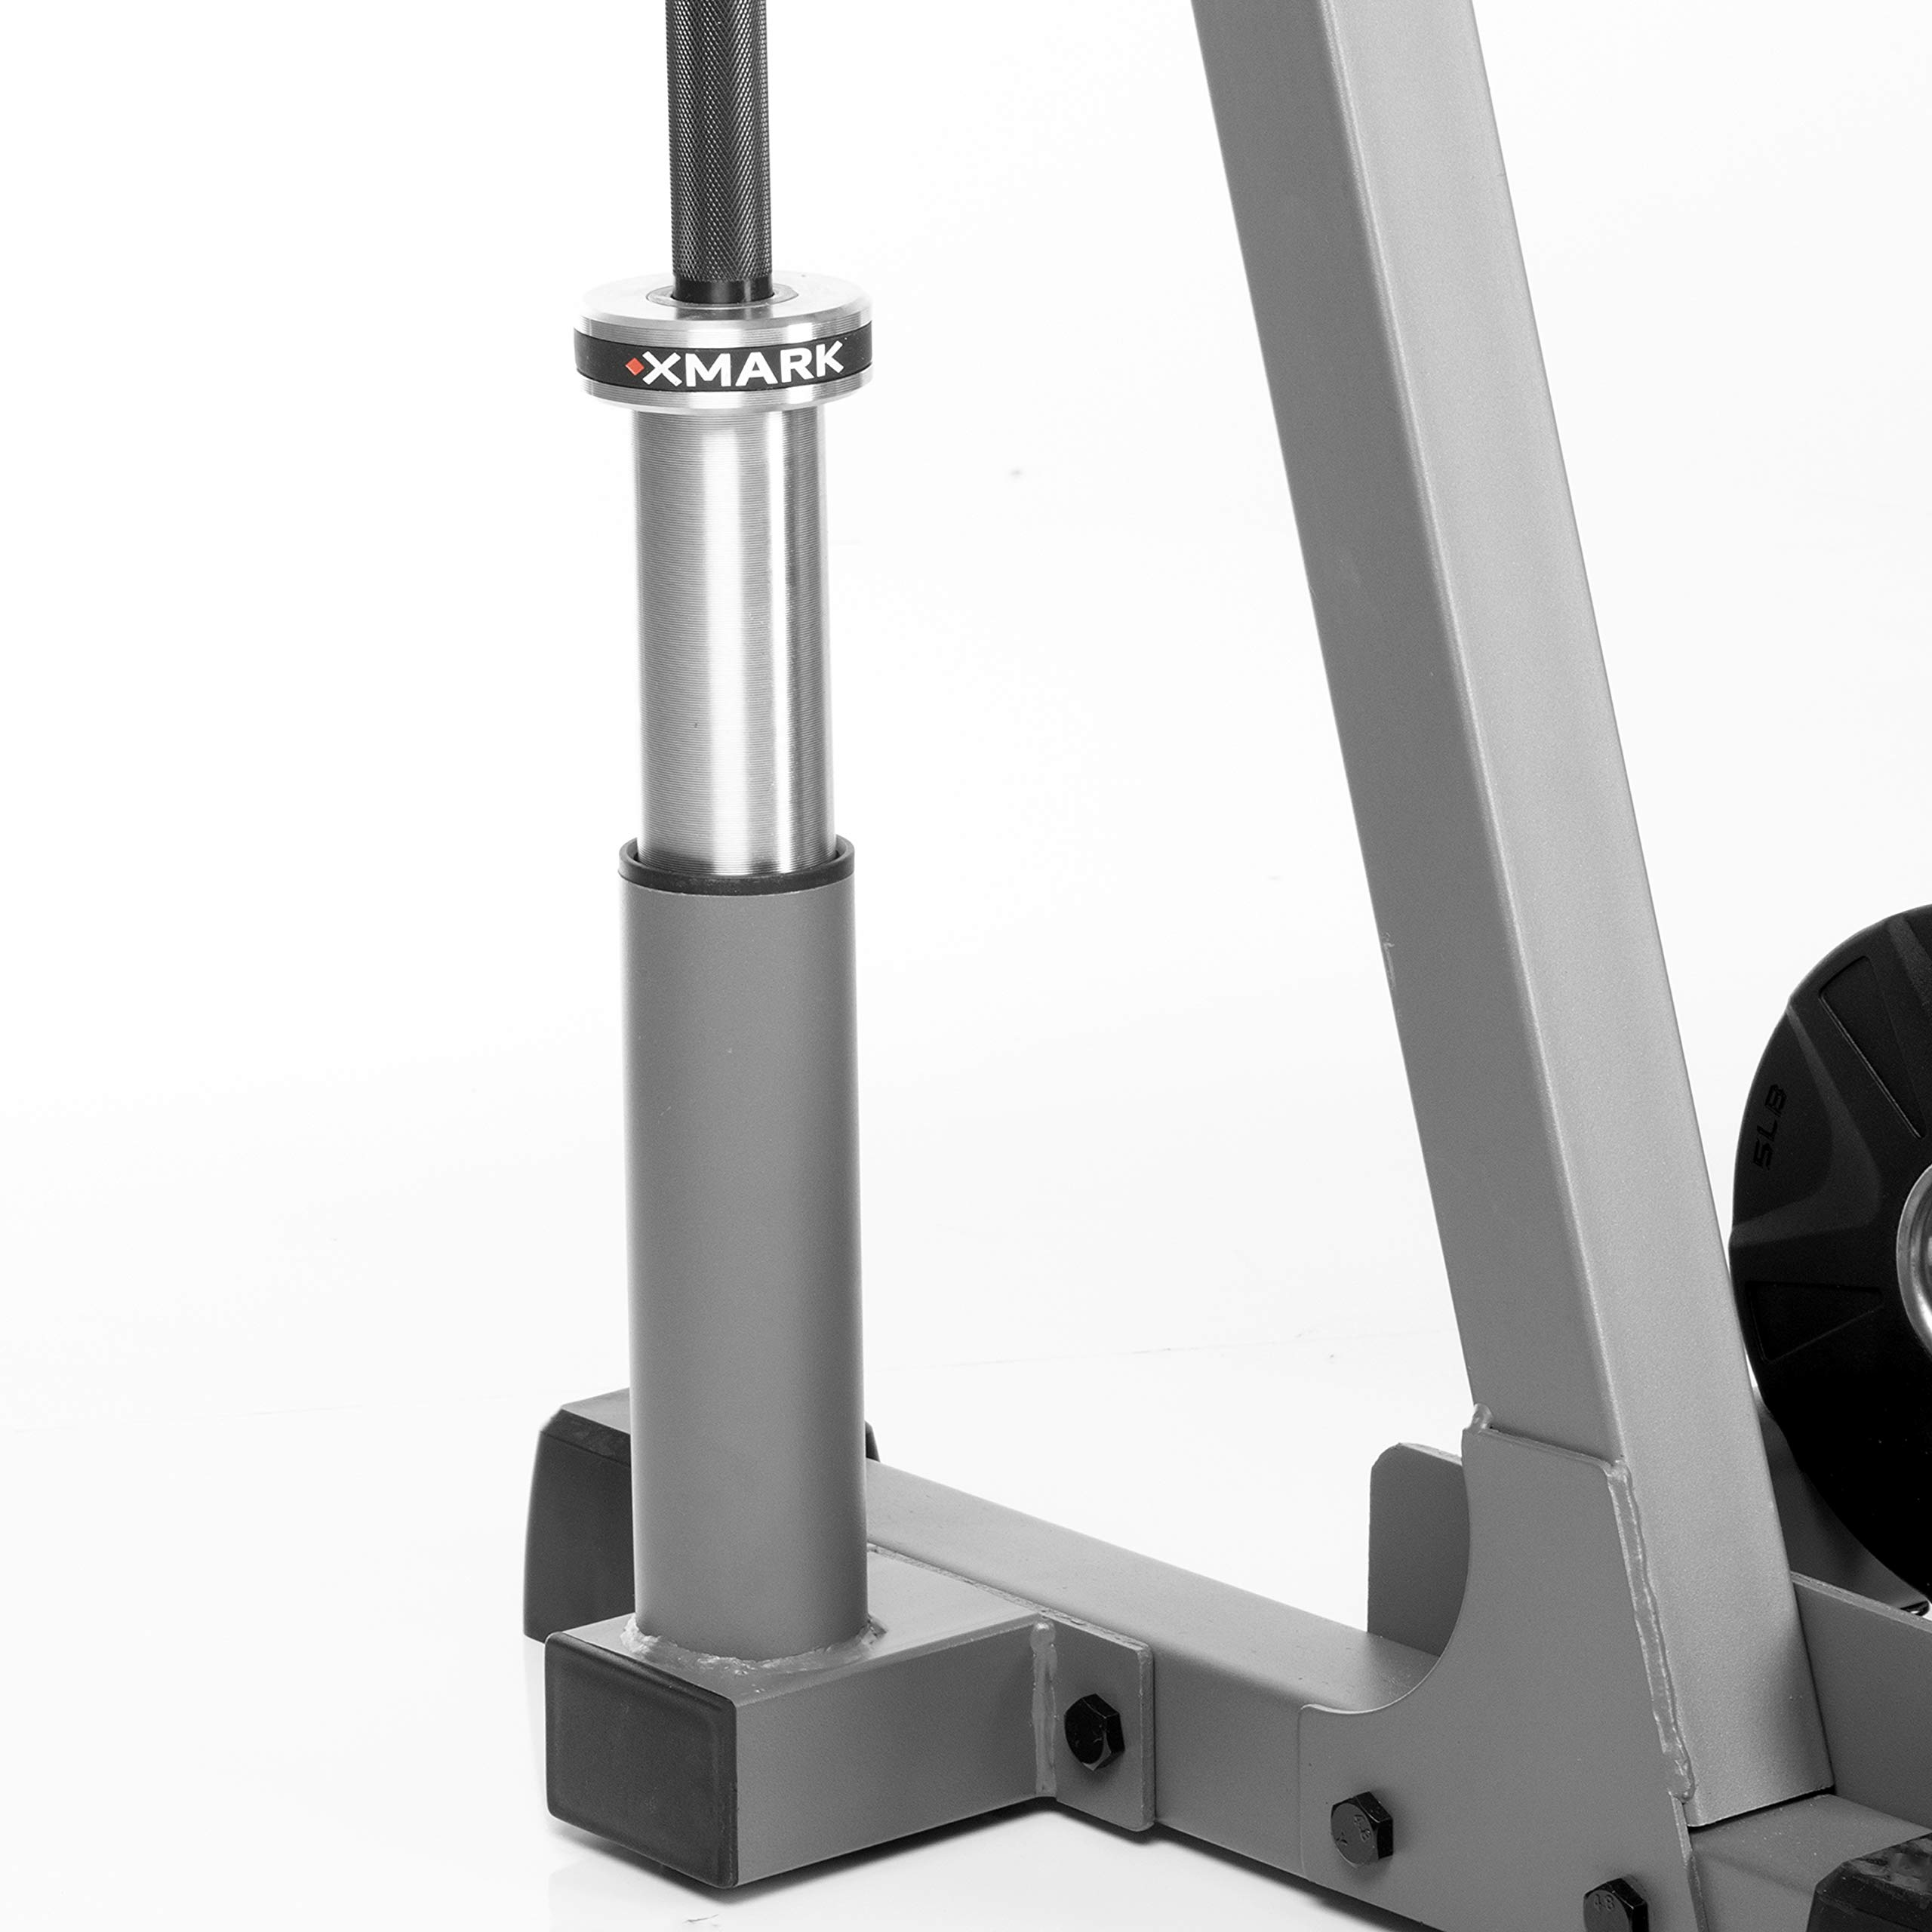 XMark All-in-One Dumbbell Rack, Plate Weight Storage and Dual Vertical Bar Holder, Design Patent Pending by XMark (Image #3)